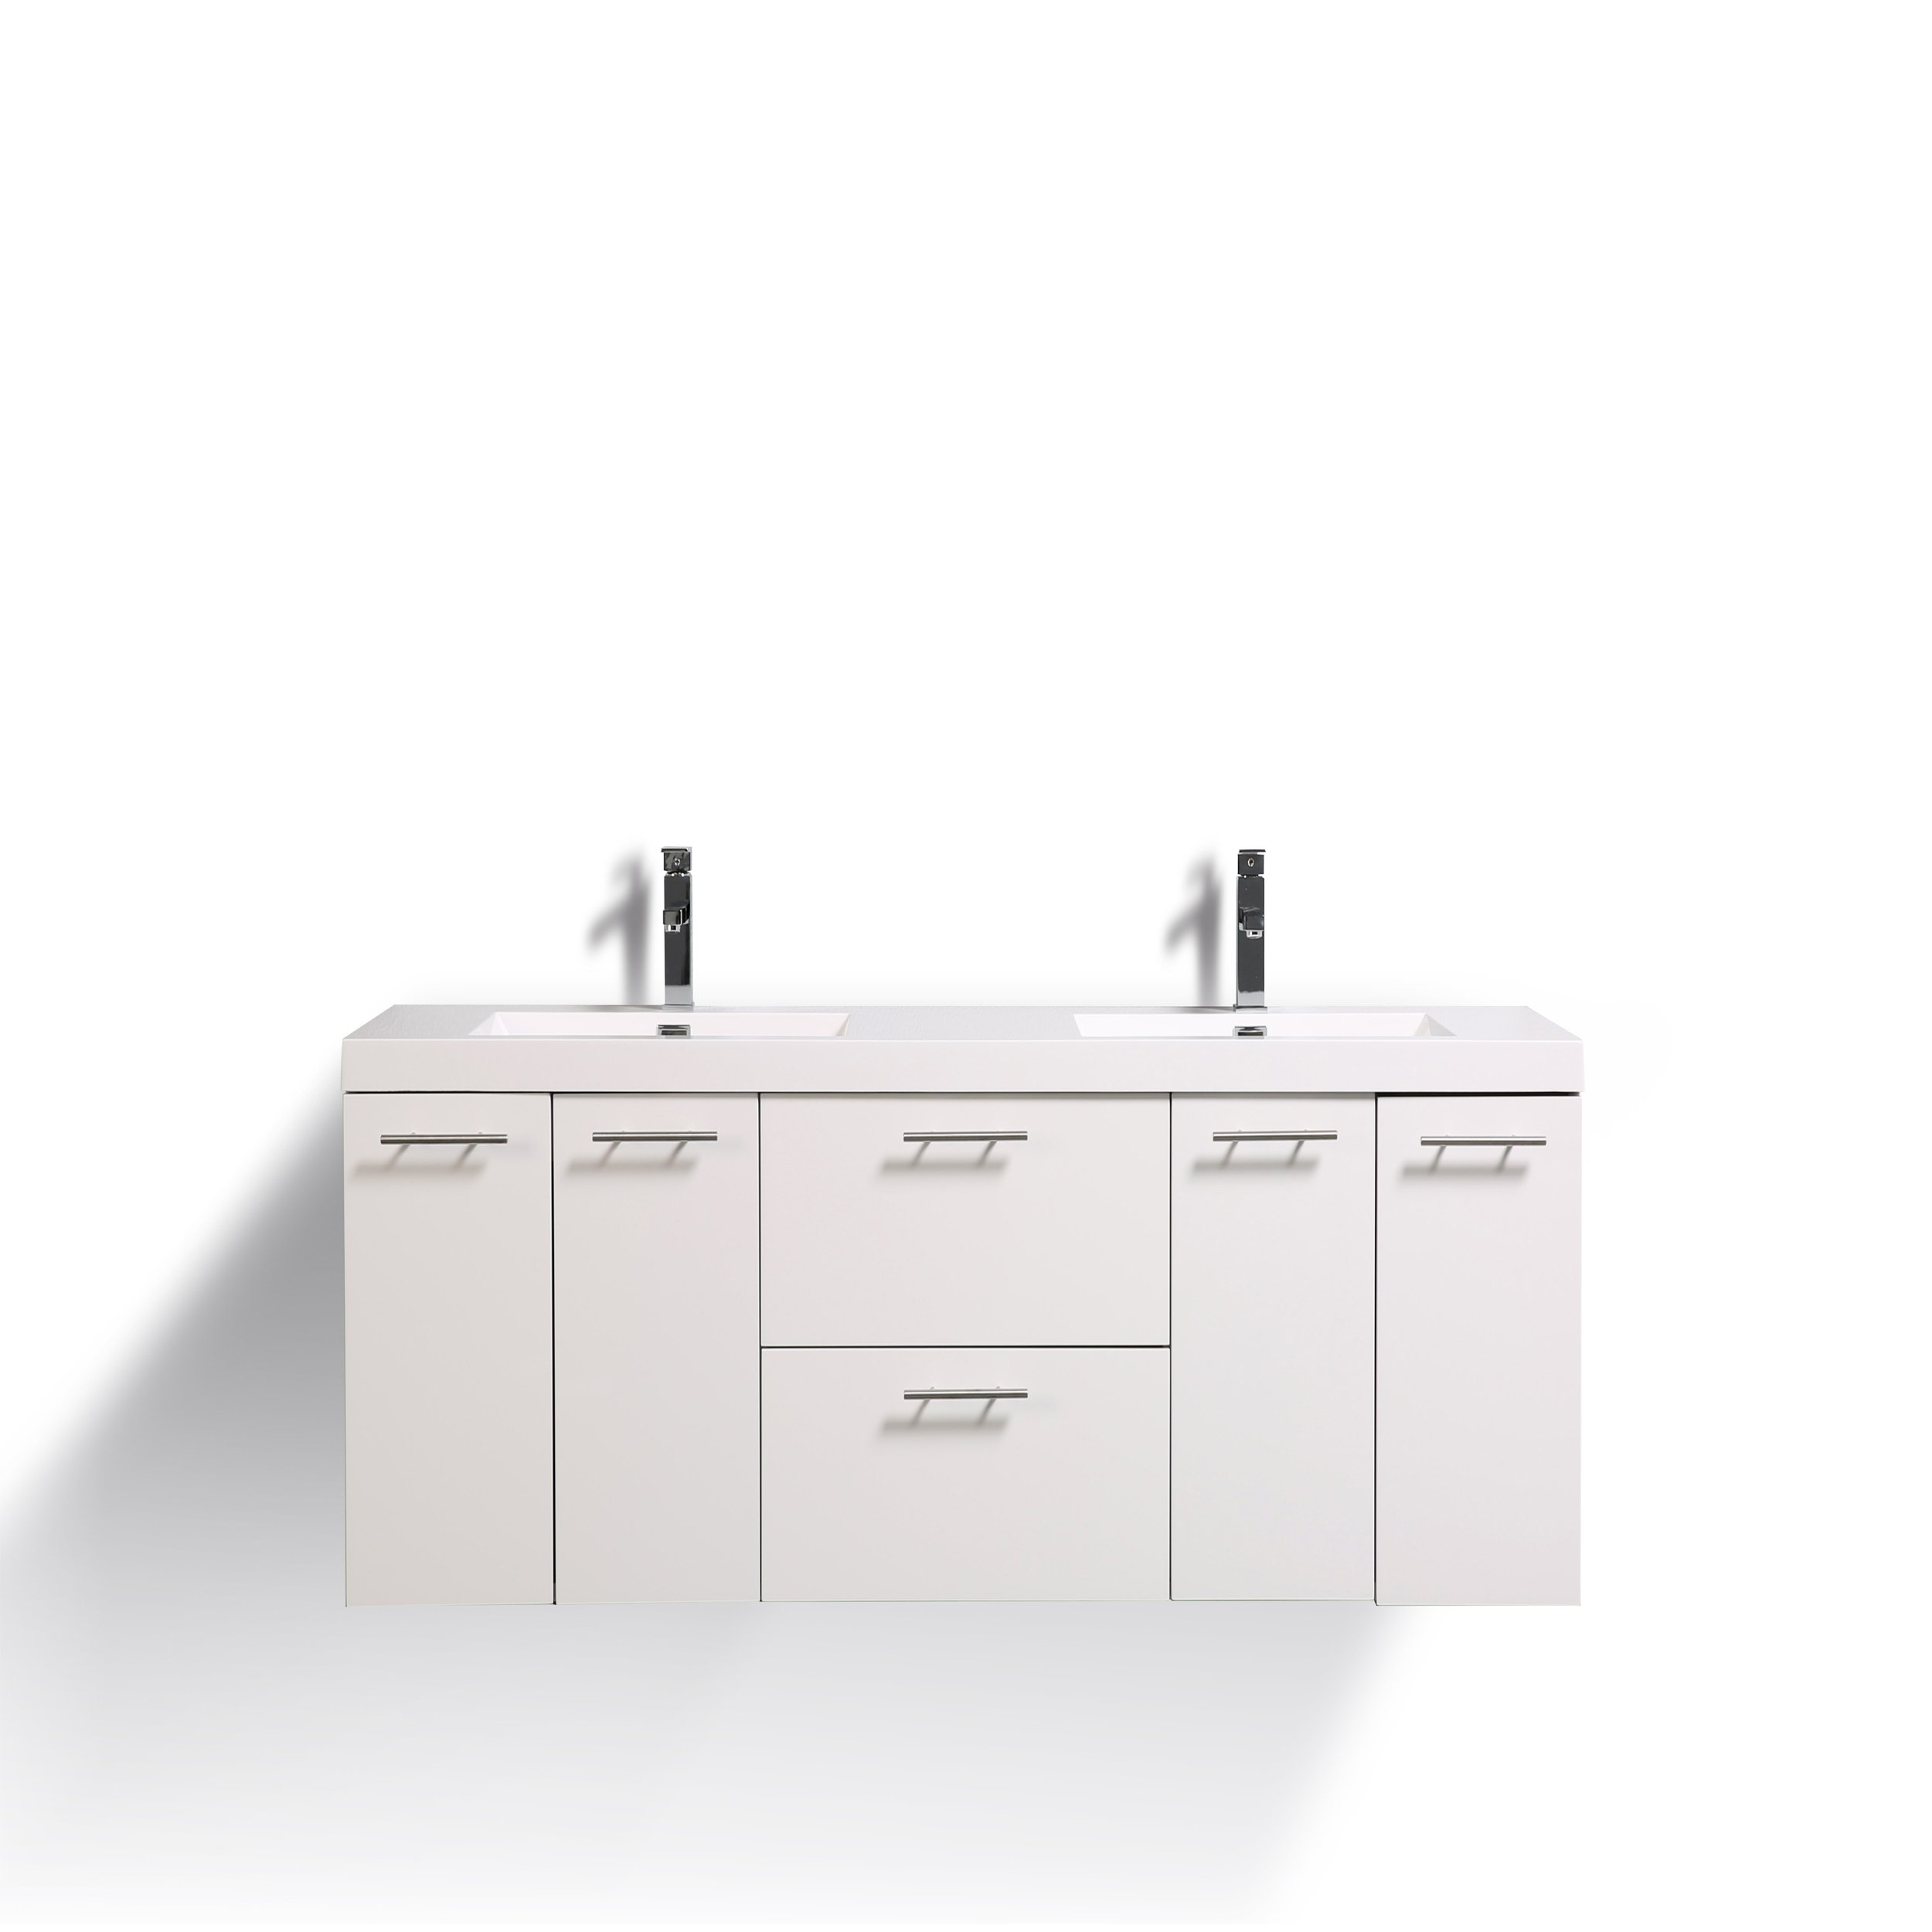 Eviva EVVN823-72WH-DS Luxury 72 inch White Bathroom Vanity with Integrated Acrylic Sinks, 72'',